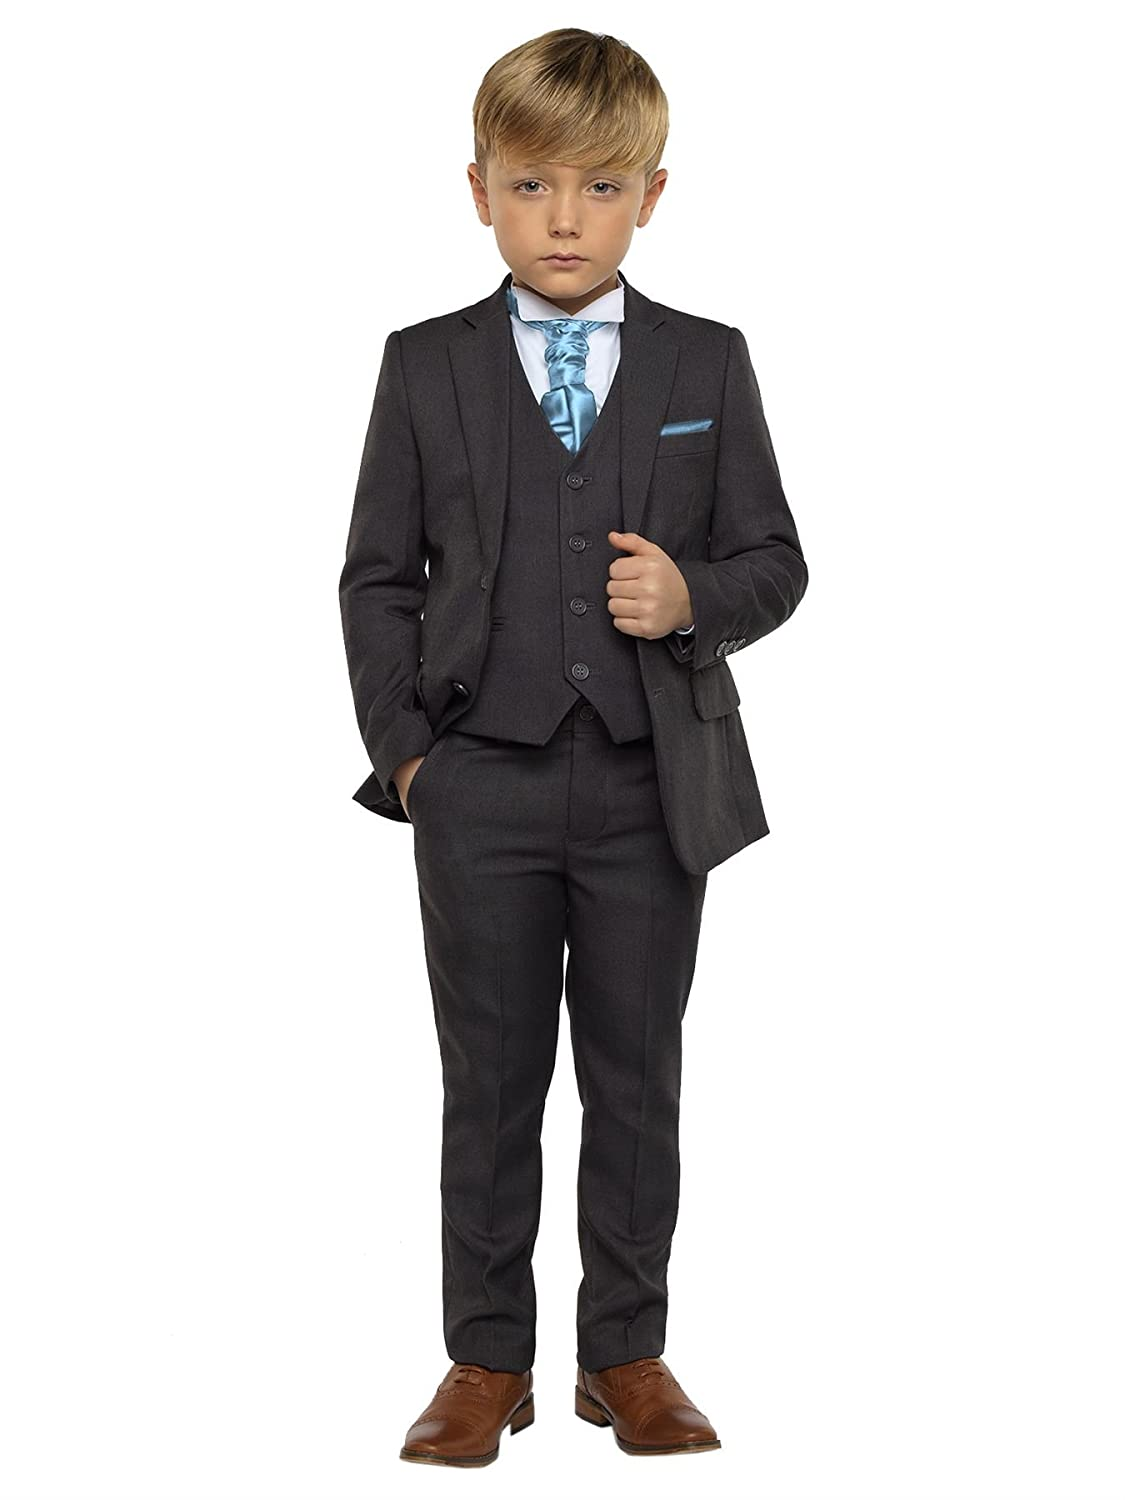 Special Section Boys Cravat Wedding Tie Formal Party One Size Single End Navy Silver Clothing, Shoes & Accessories